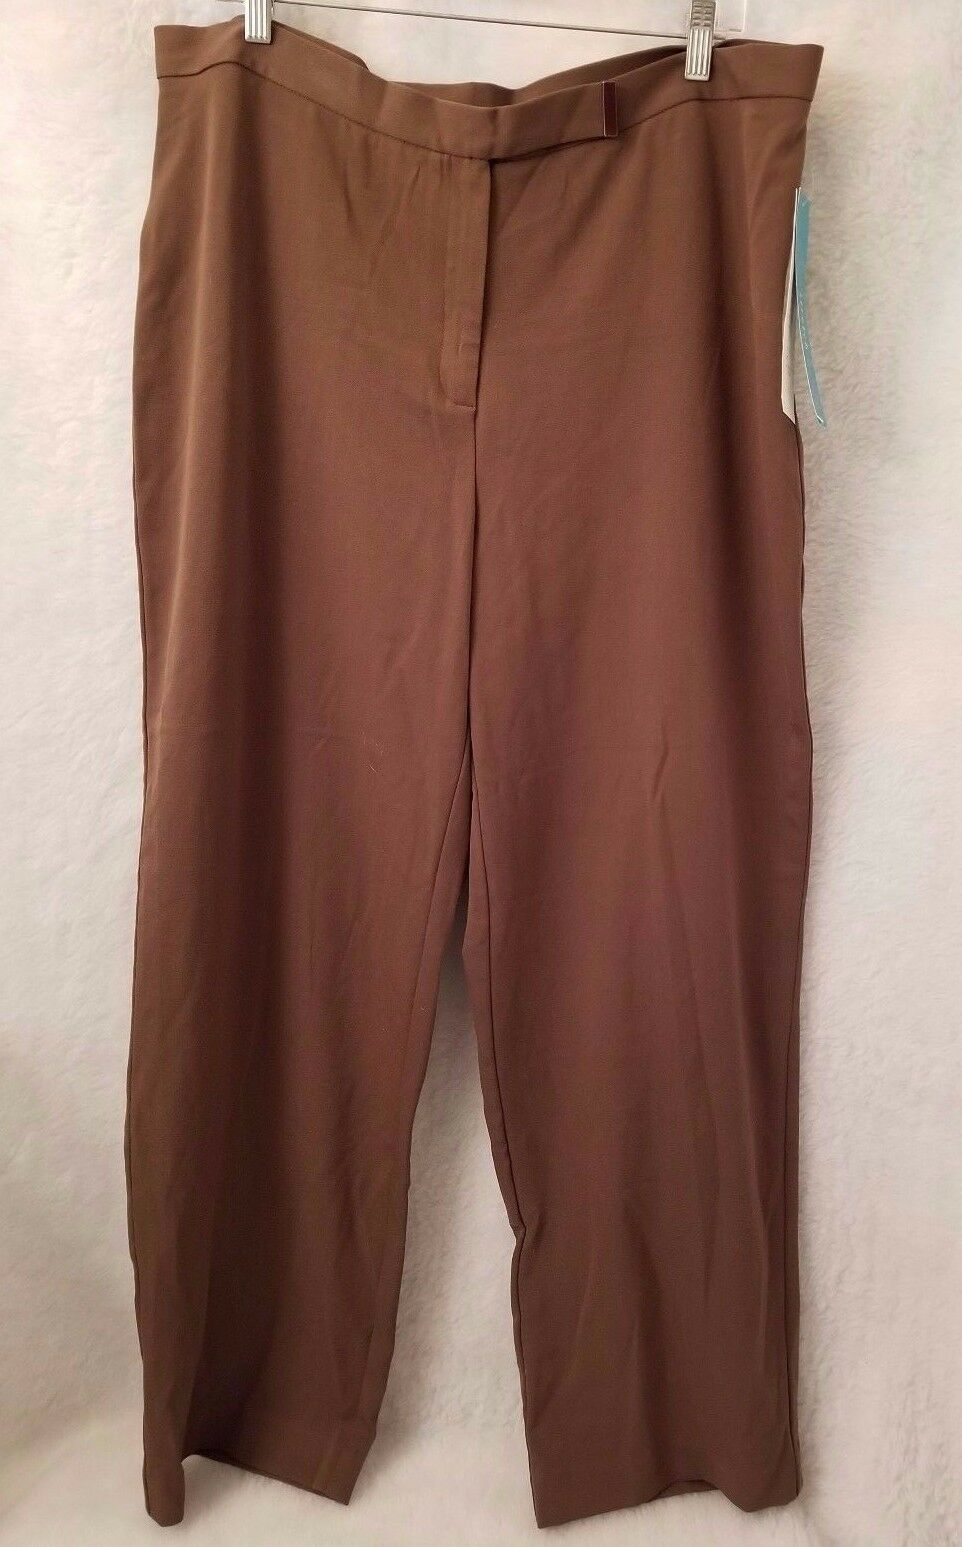 First Issue Liz Claiborne NWT Womens Greenish Brown Pants Size 18